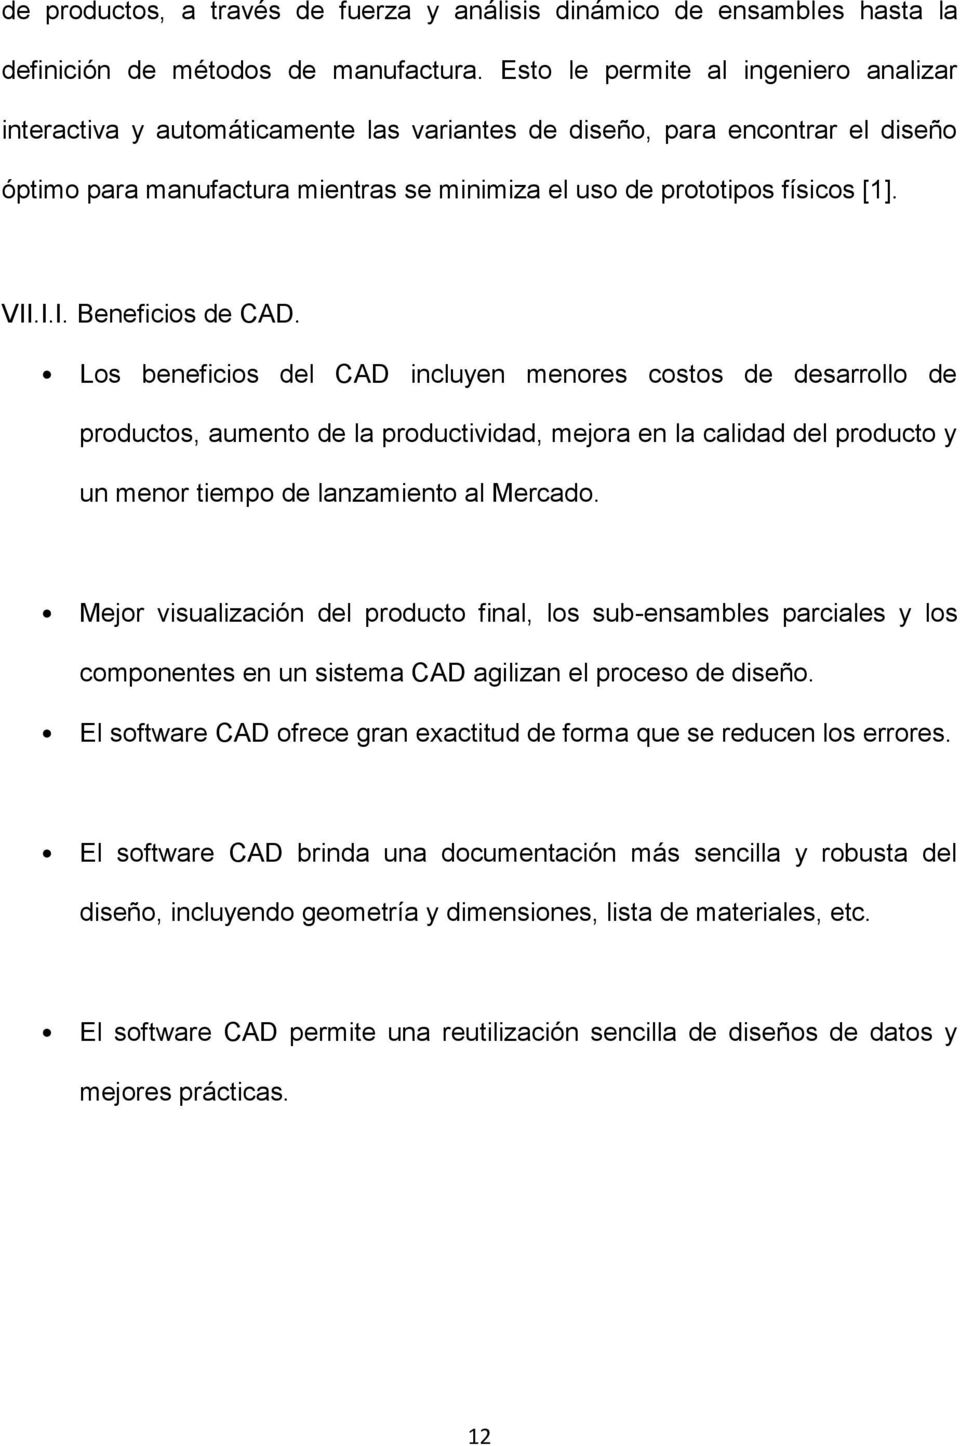 VII.I.I. Beneficios de CAD.